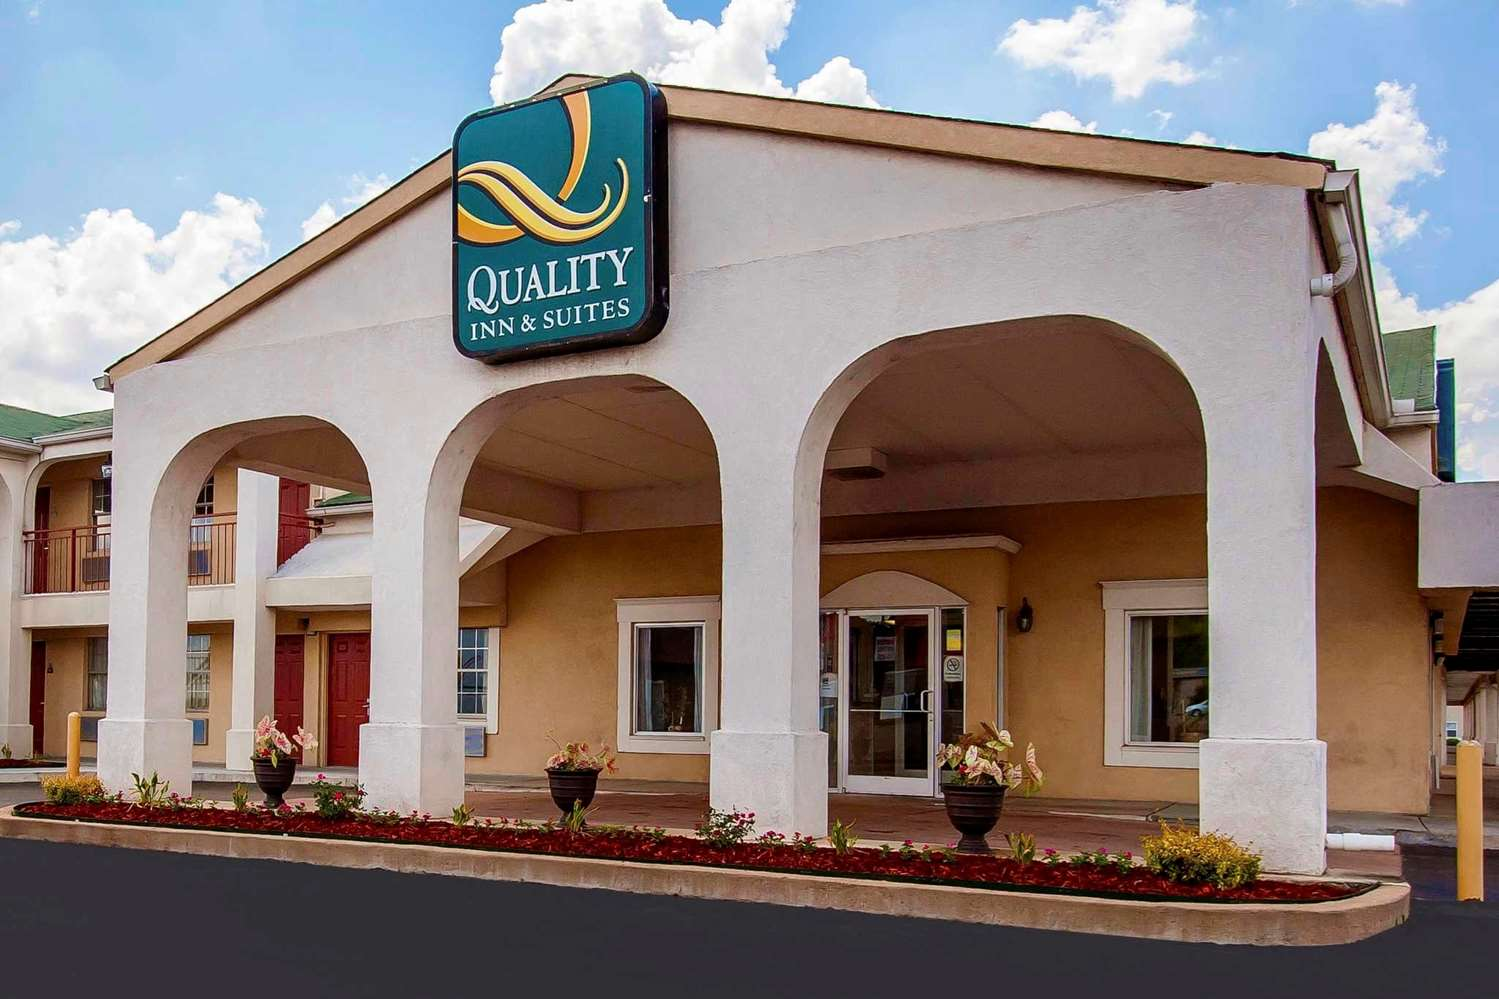 Quality Inn & Suites Covington